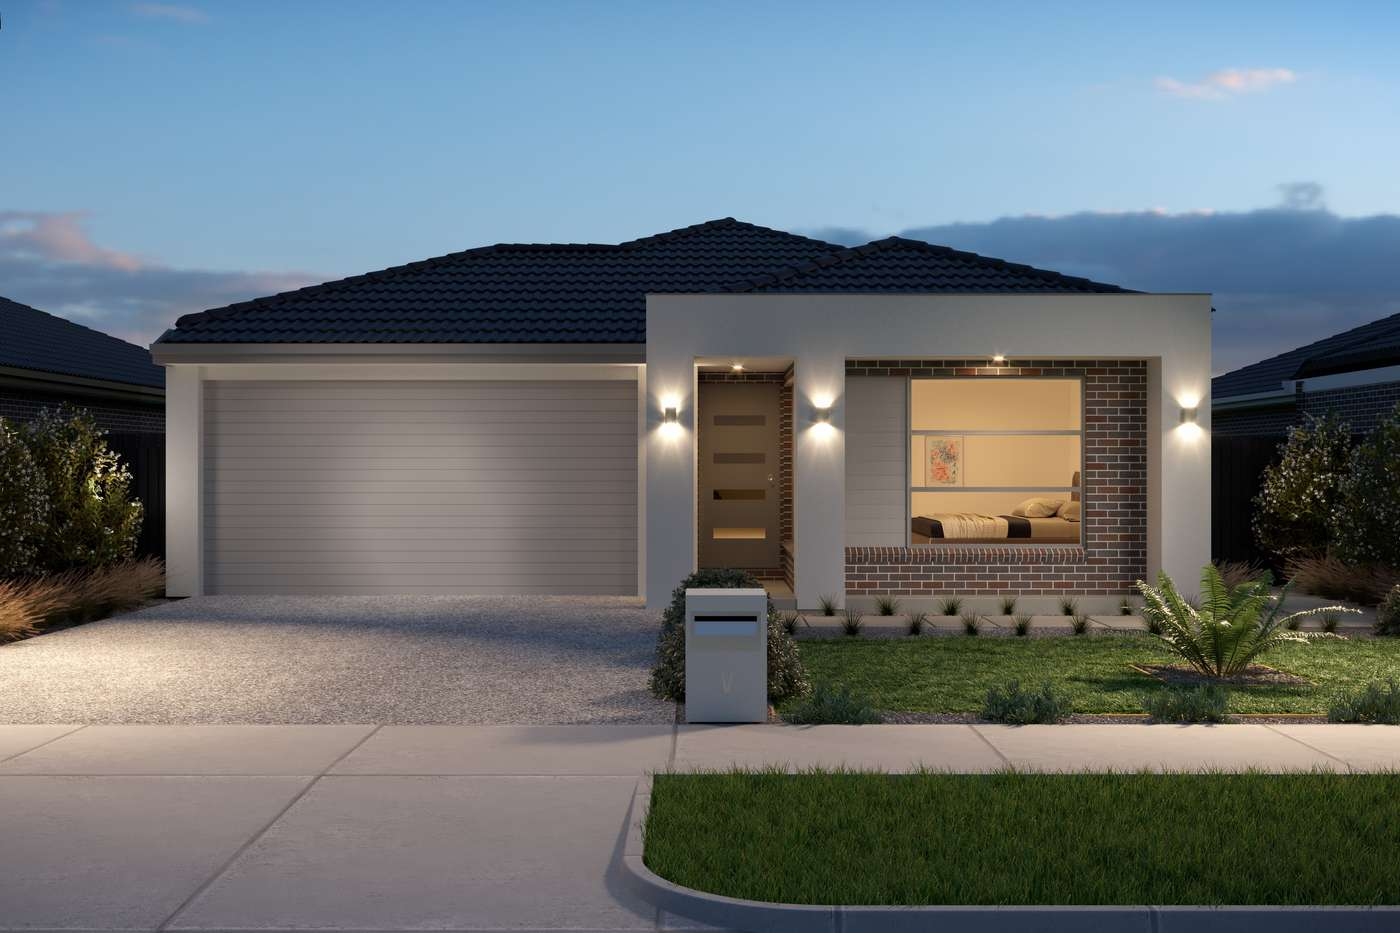 Main view of Homely house listing, Address available on request, Cranbourne East, VIC 3977